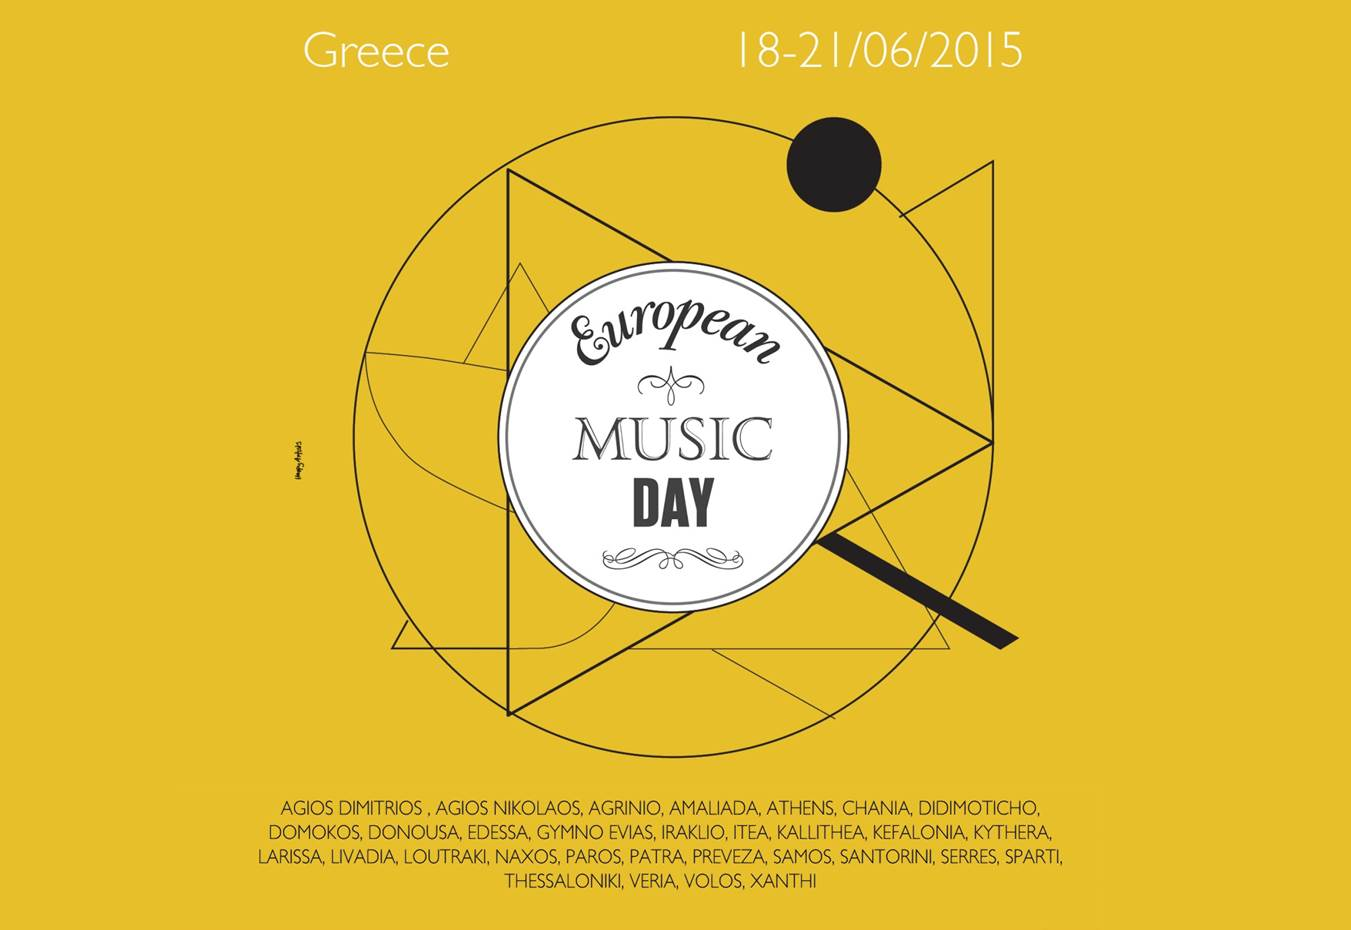 European Music Day Greece – Artwork 2015